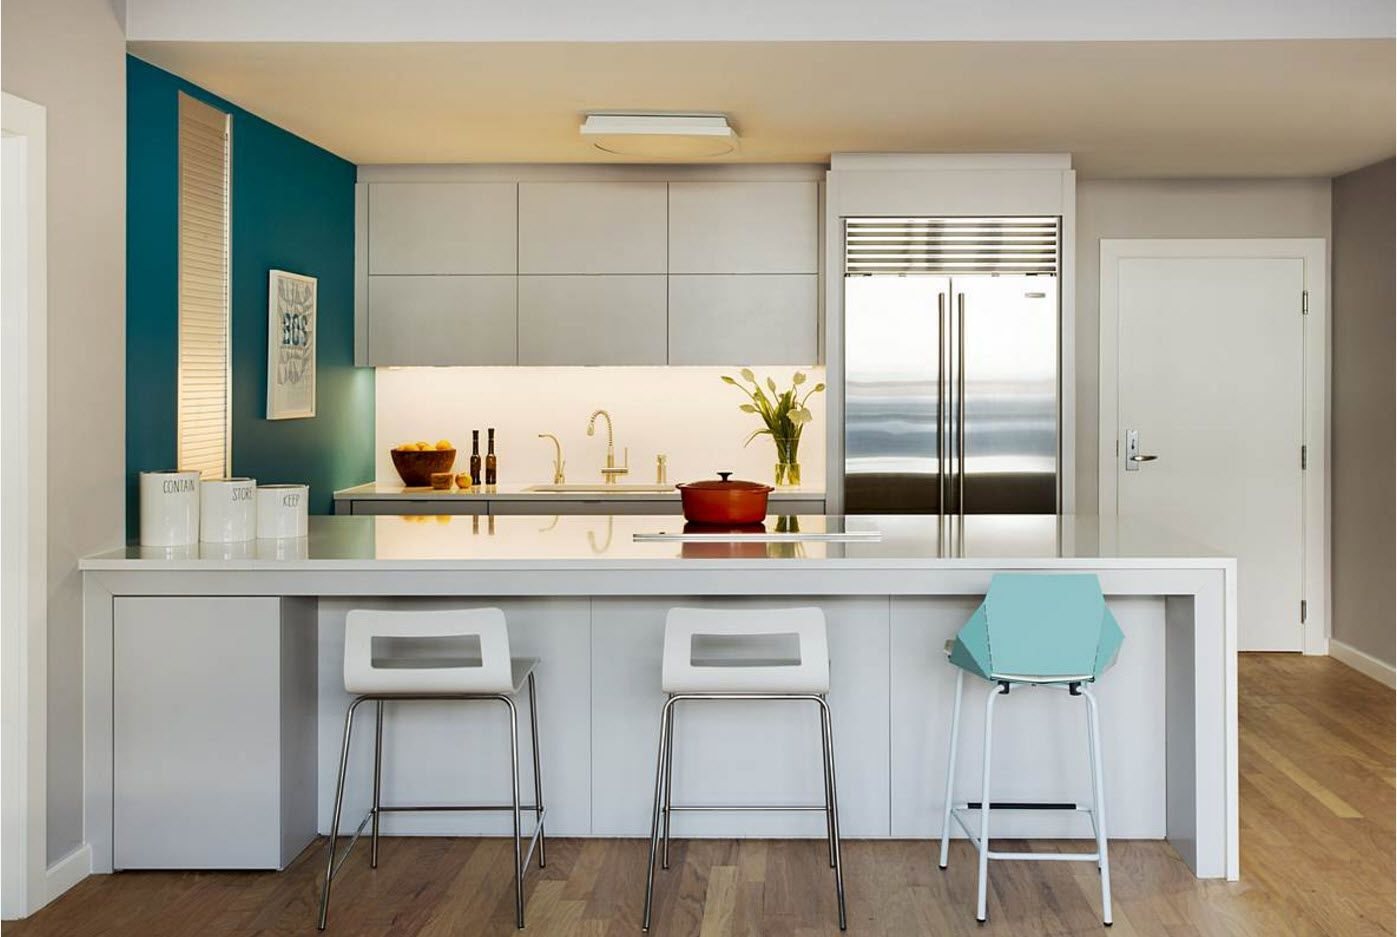 Many color accents within one ultramodern kitchen